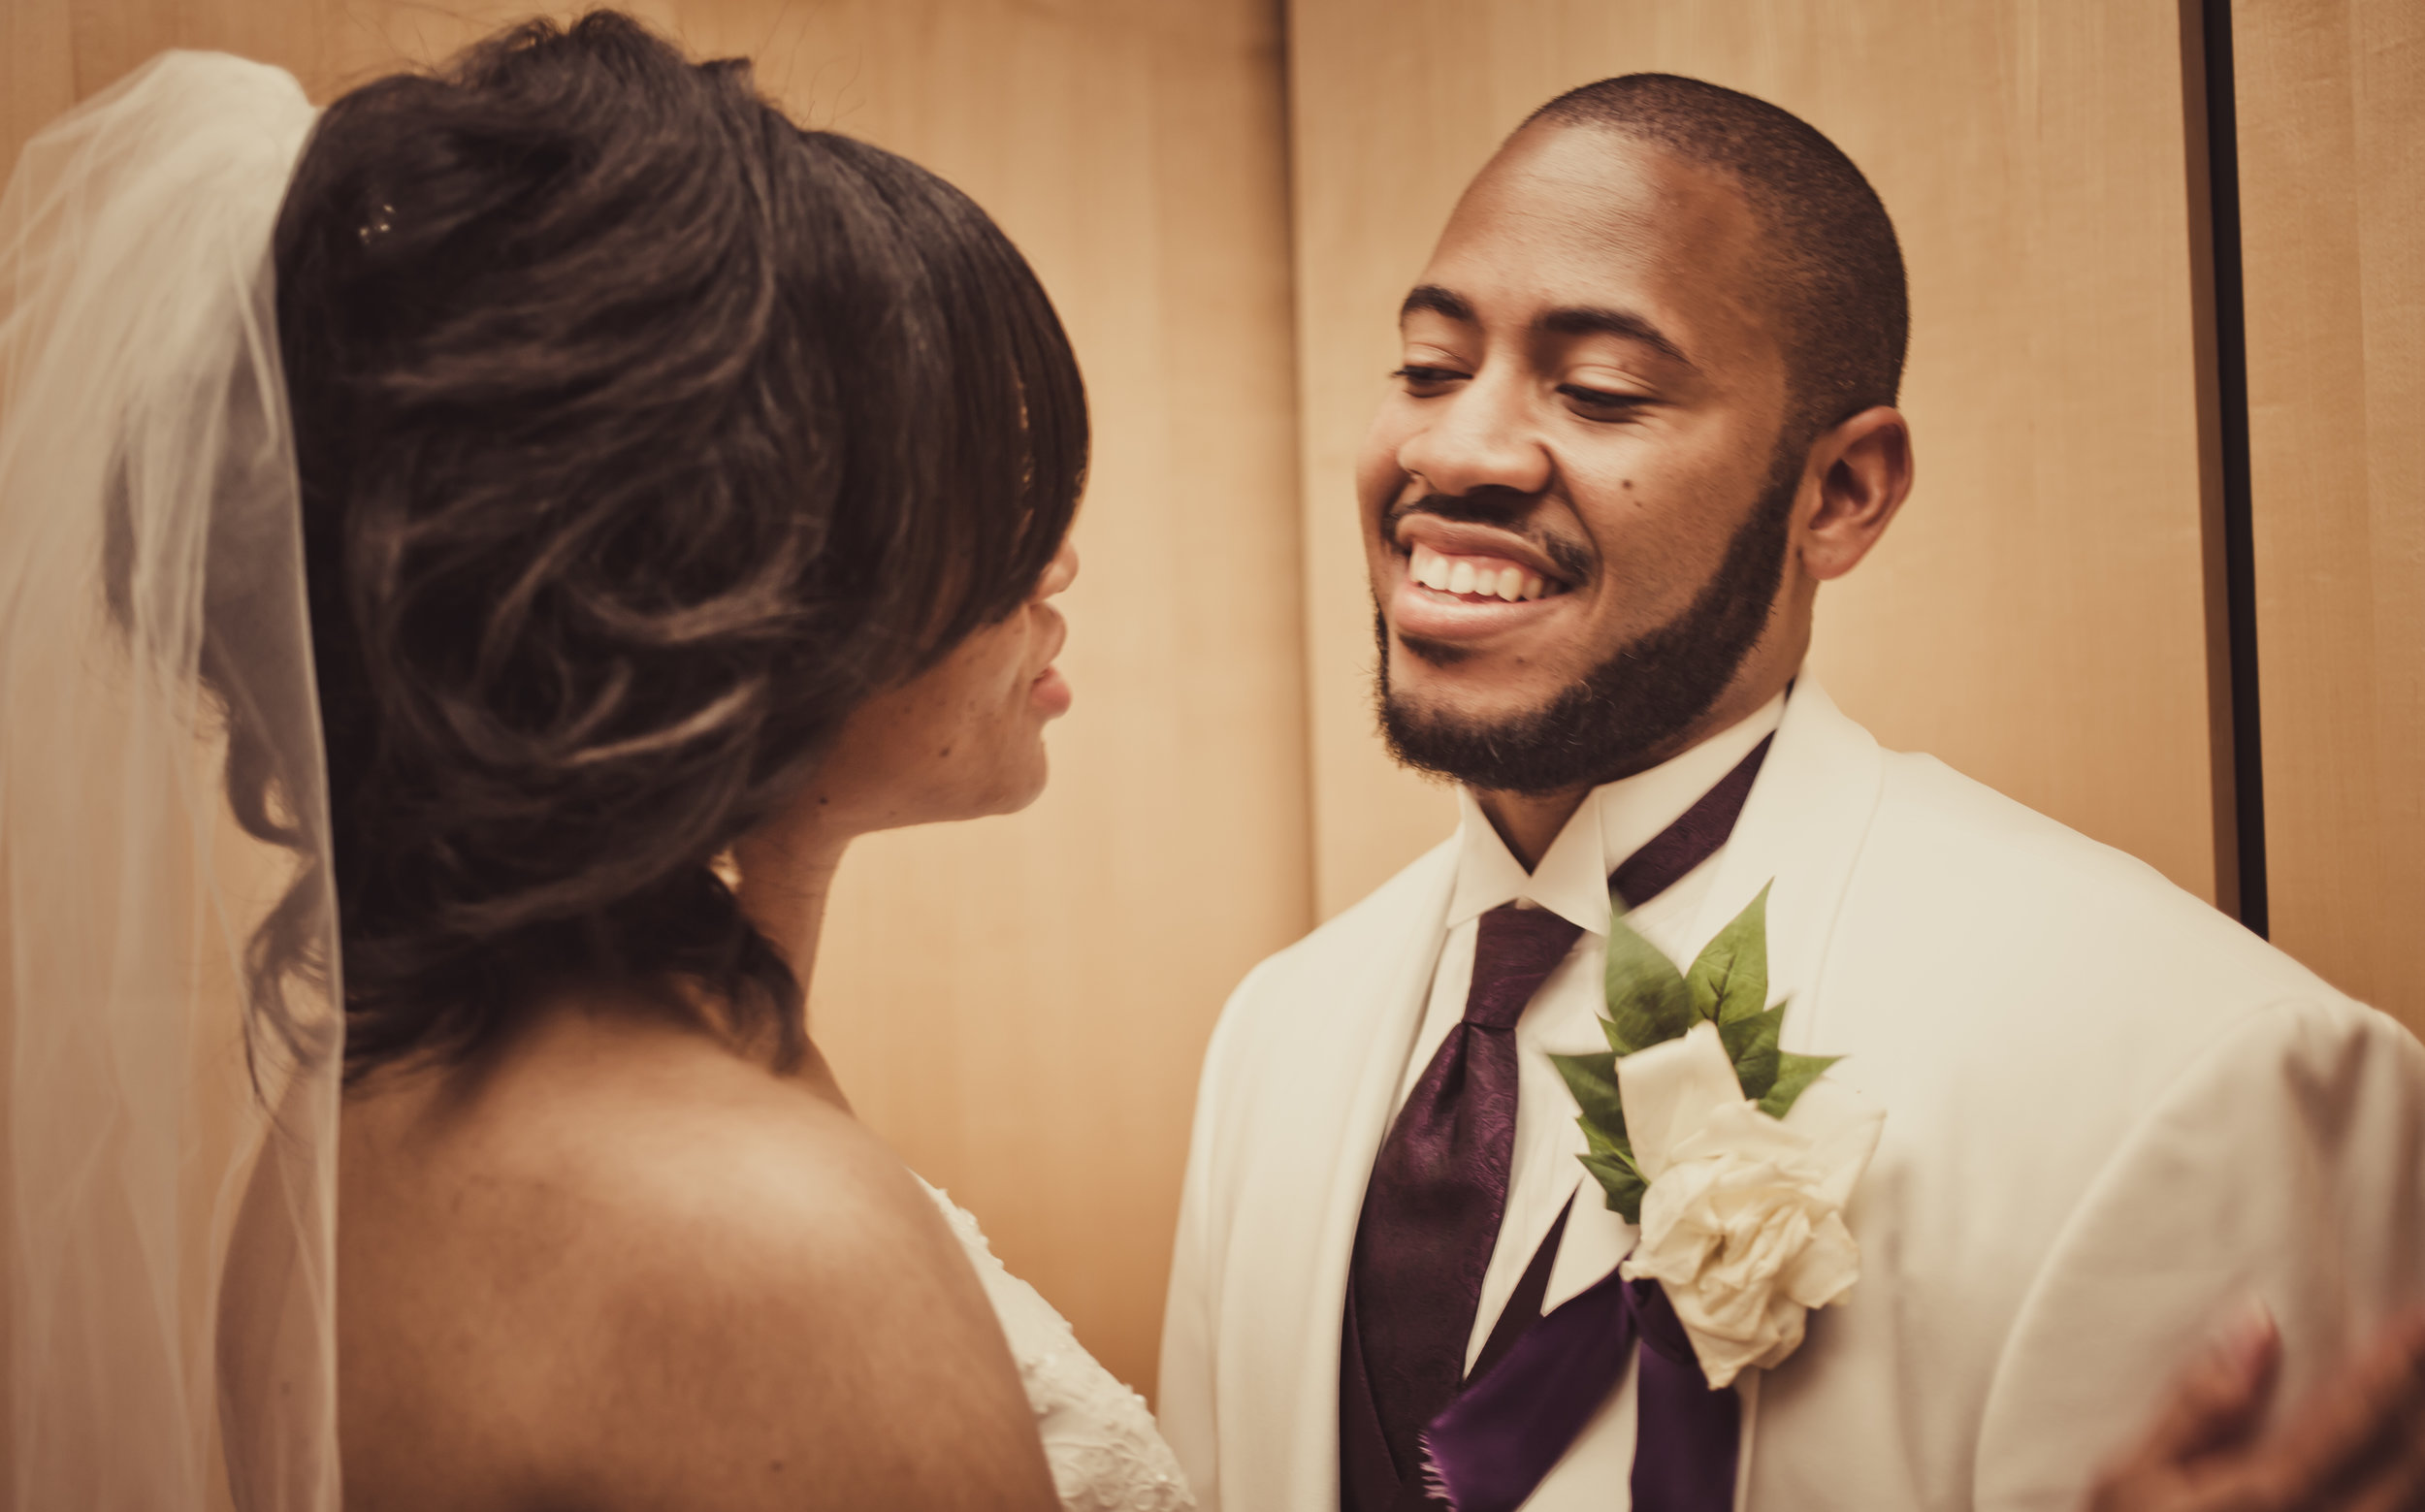 5-24-14_Errol Ebanks_The Finney Wedding_1528.jpg